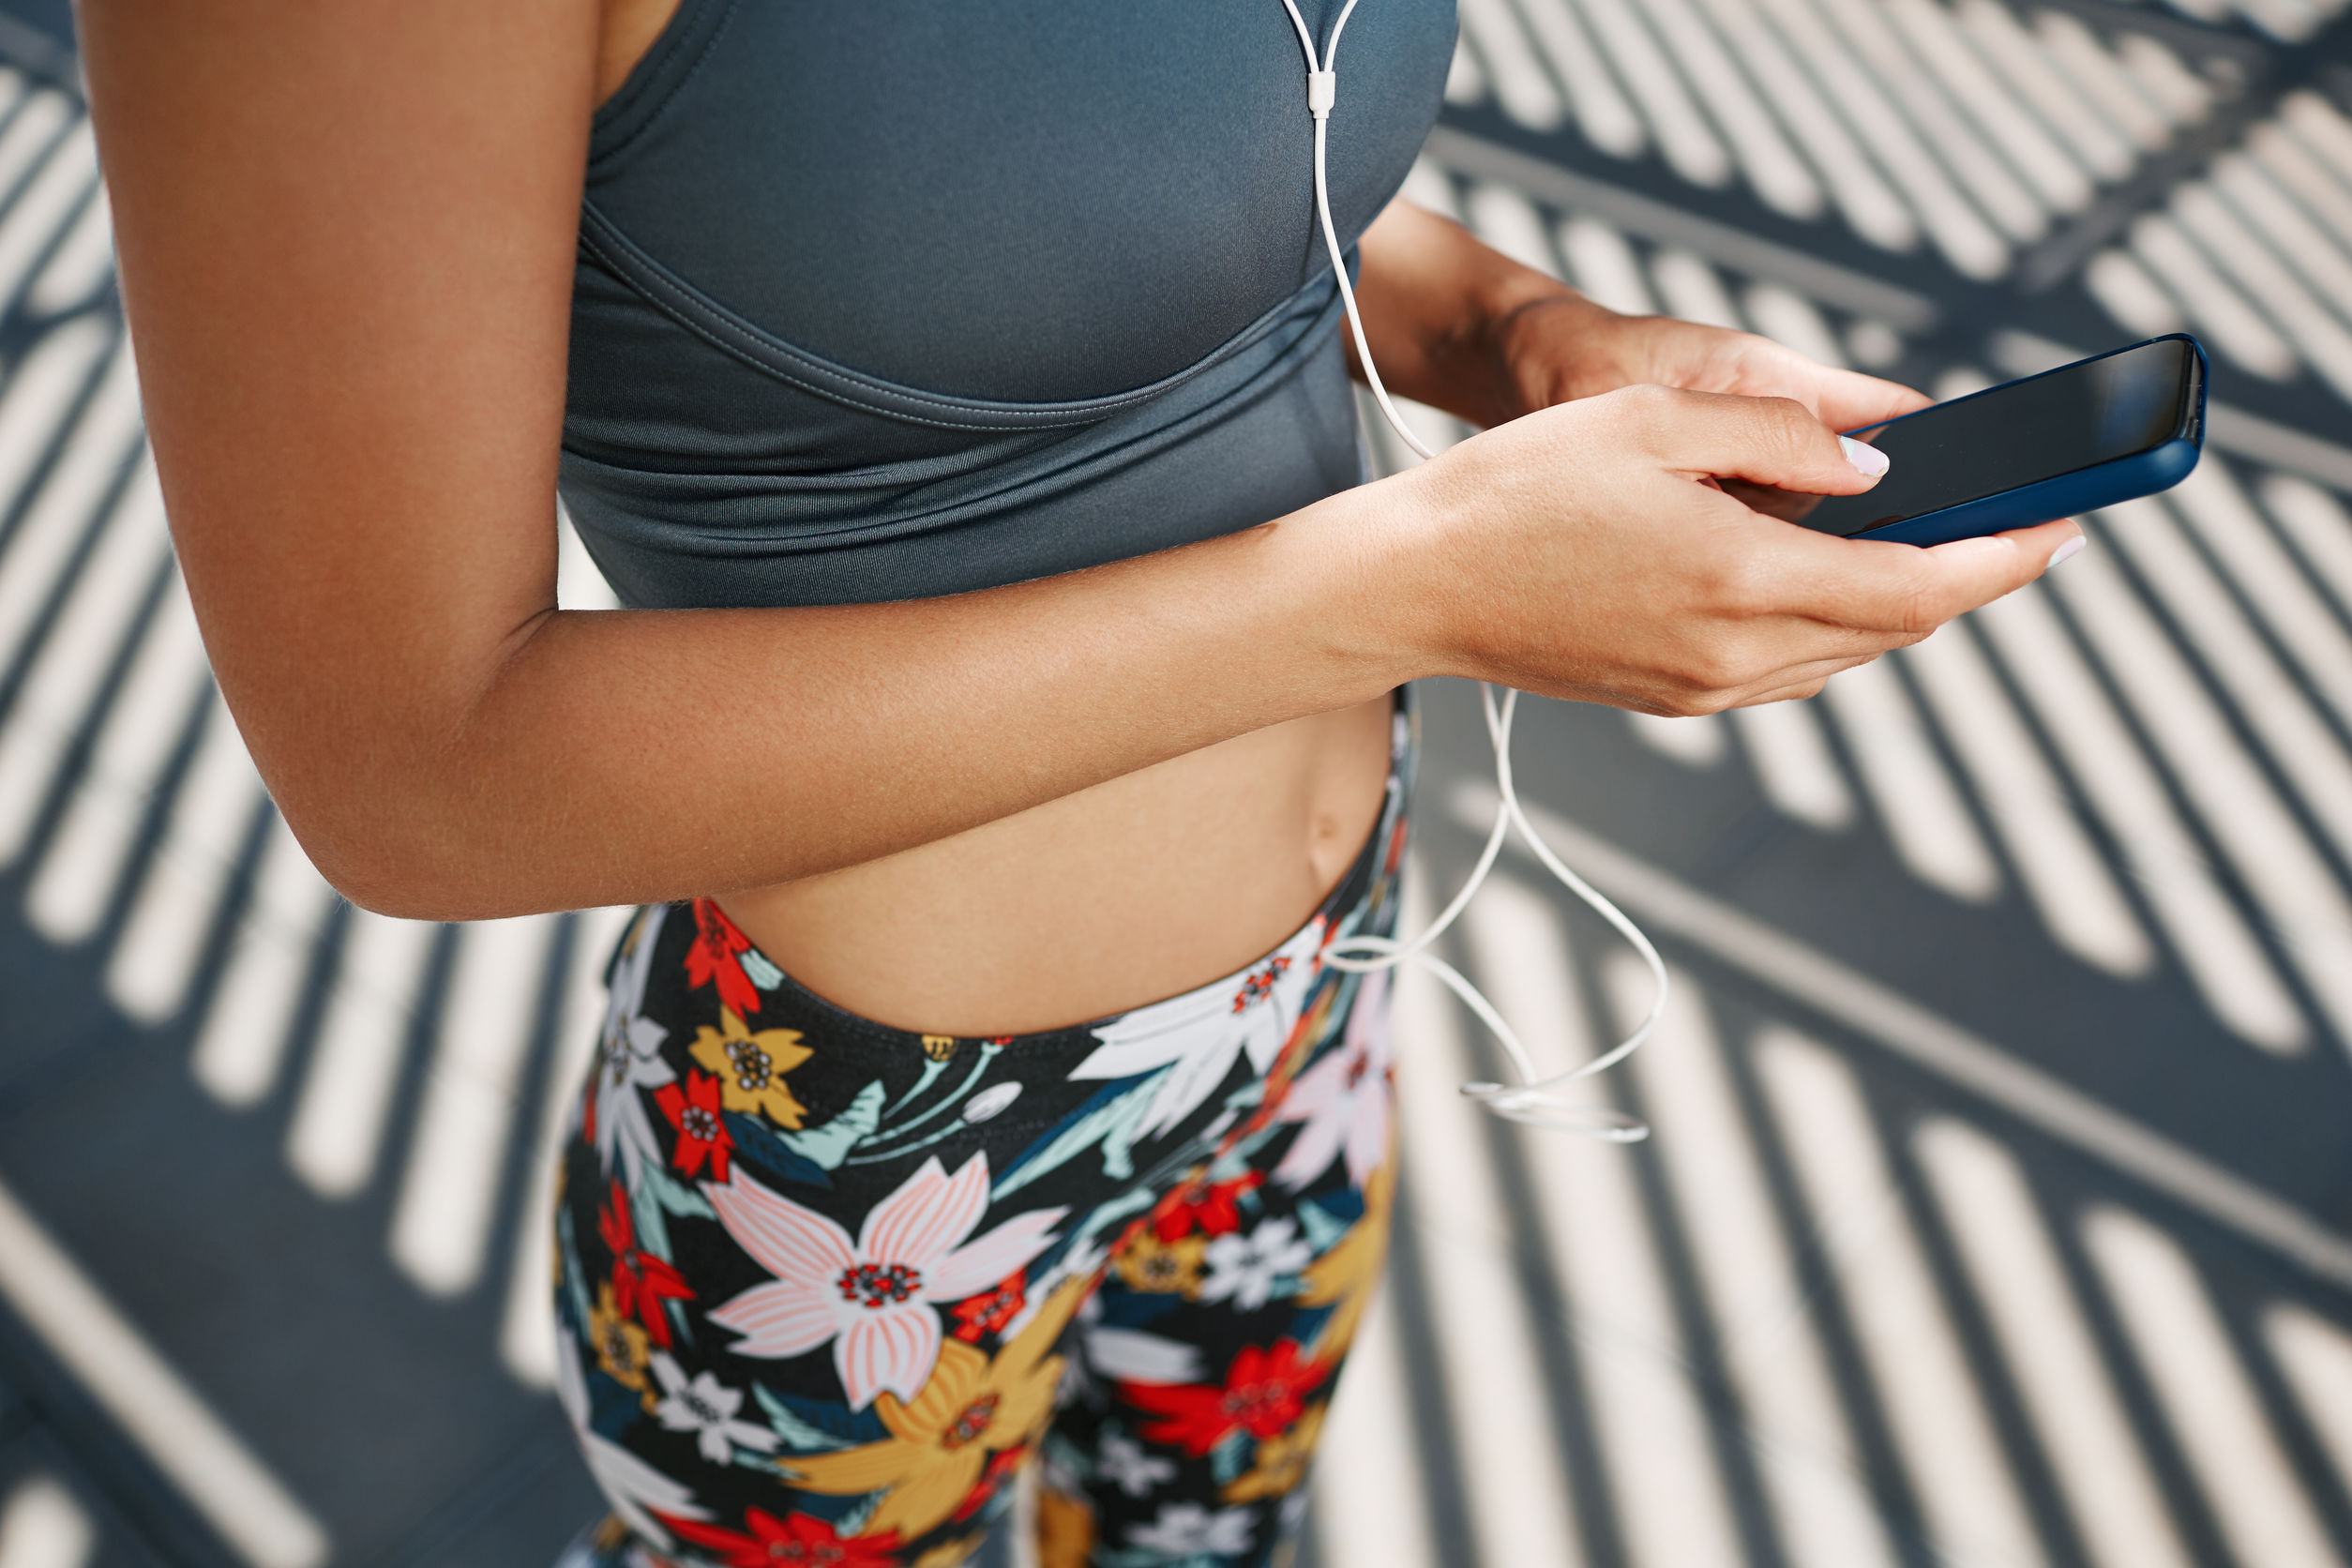 Top 100 Running Songs: Best Running Songs for your Playlist